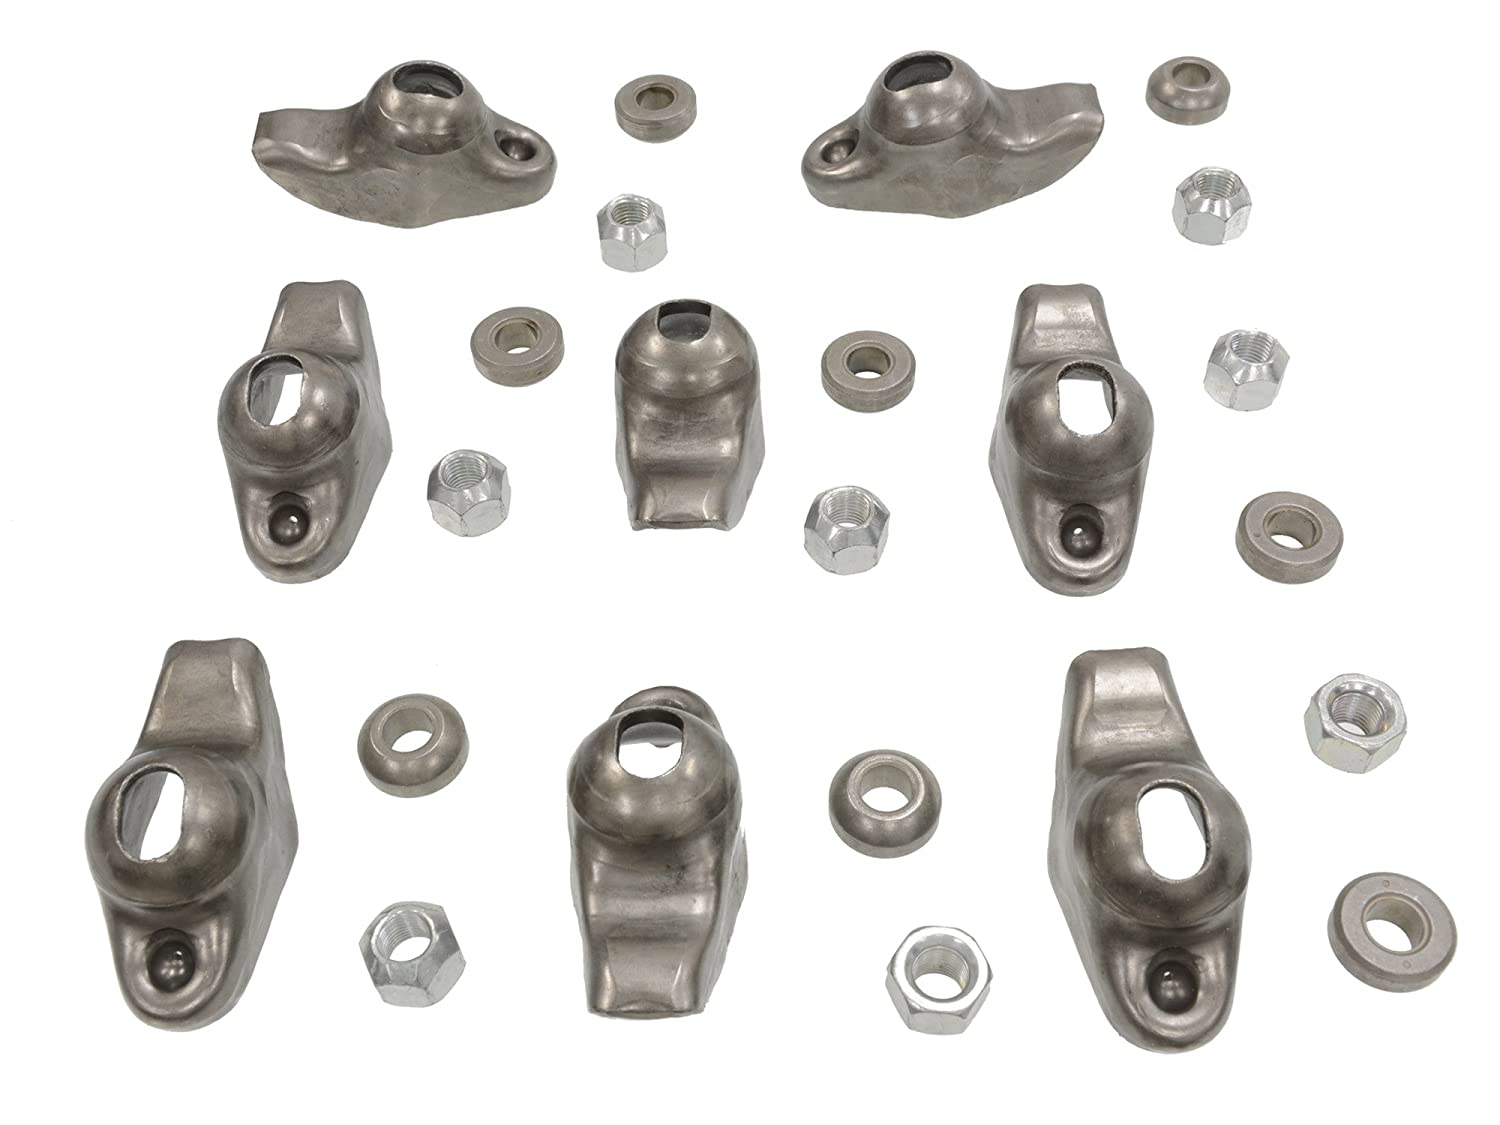 1957-1994 Corvette Rocker Arm 327/350 Includes Arm Ball and Nut CORVETTE CENTRAL 301038